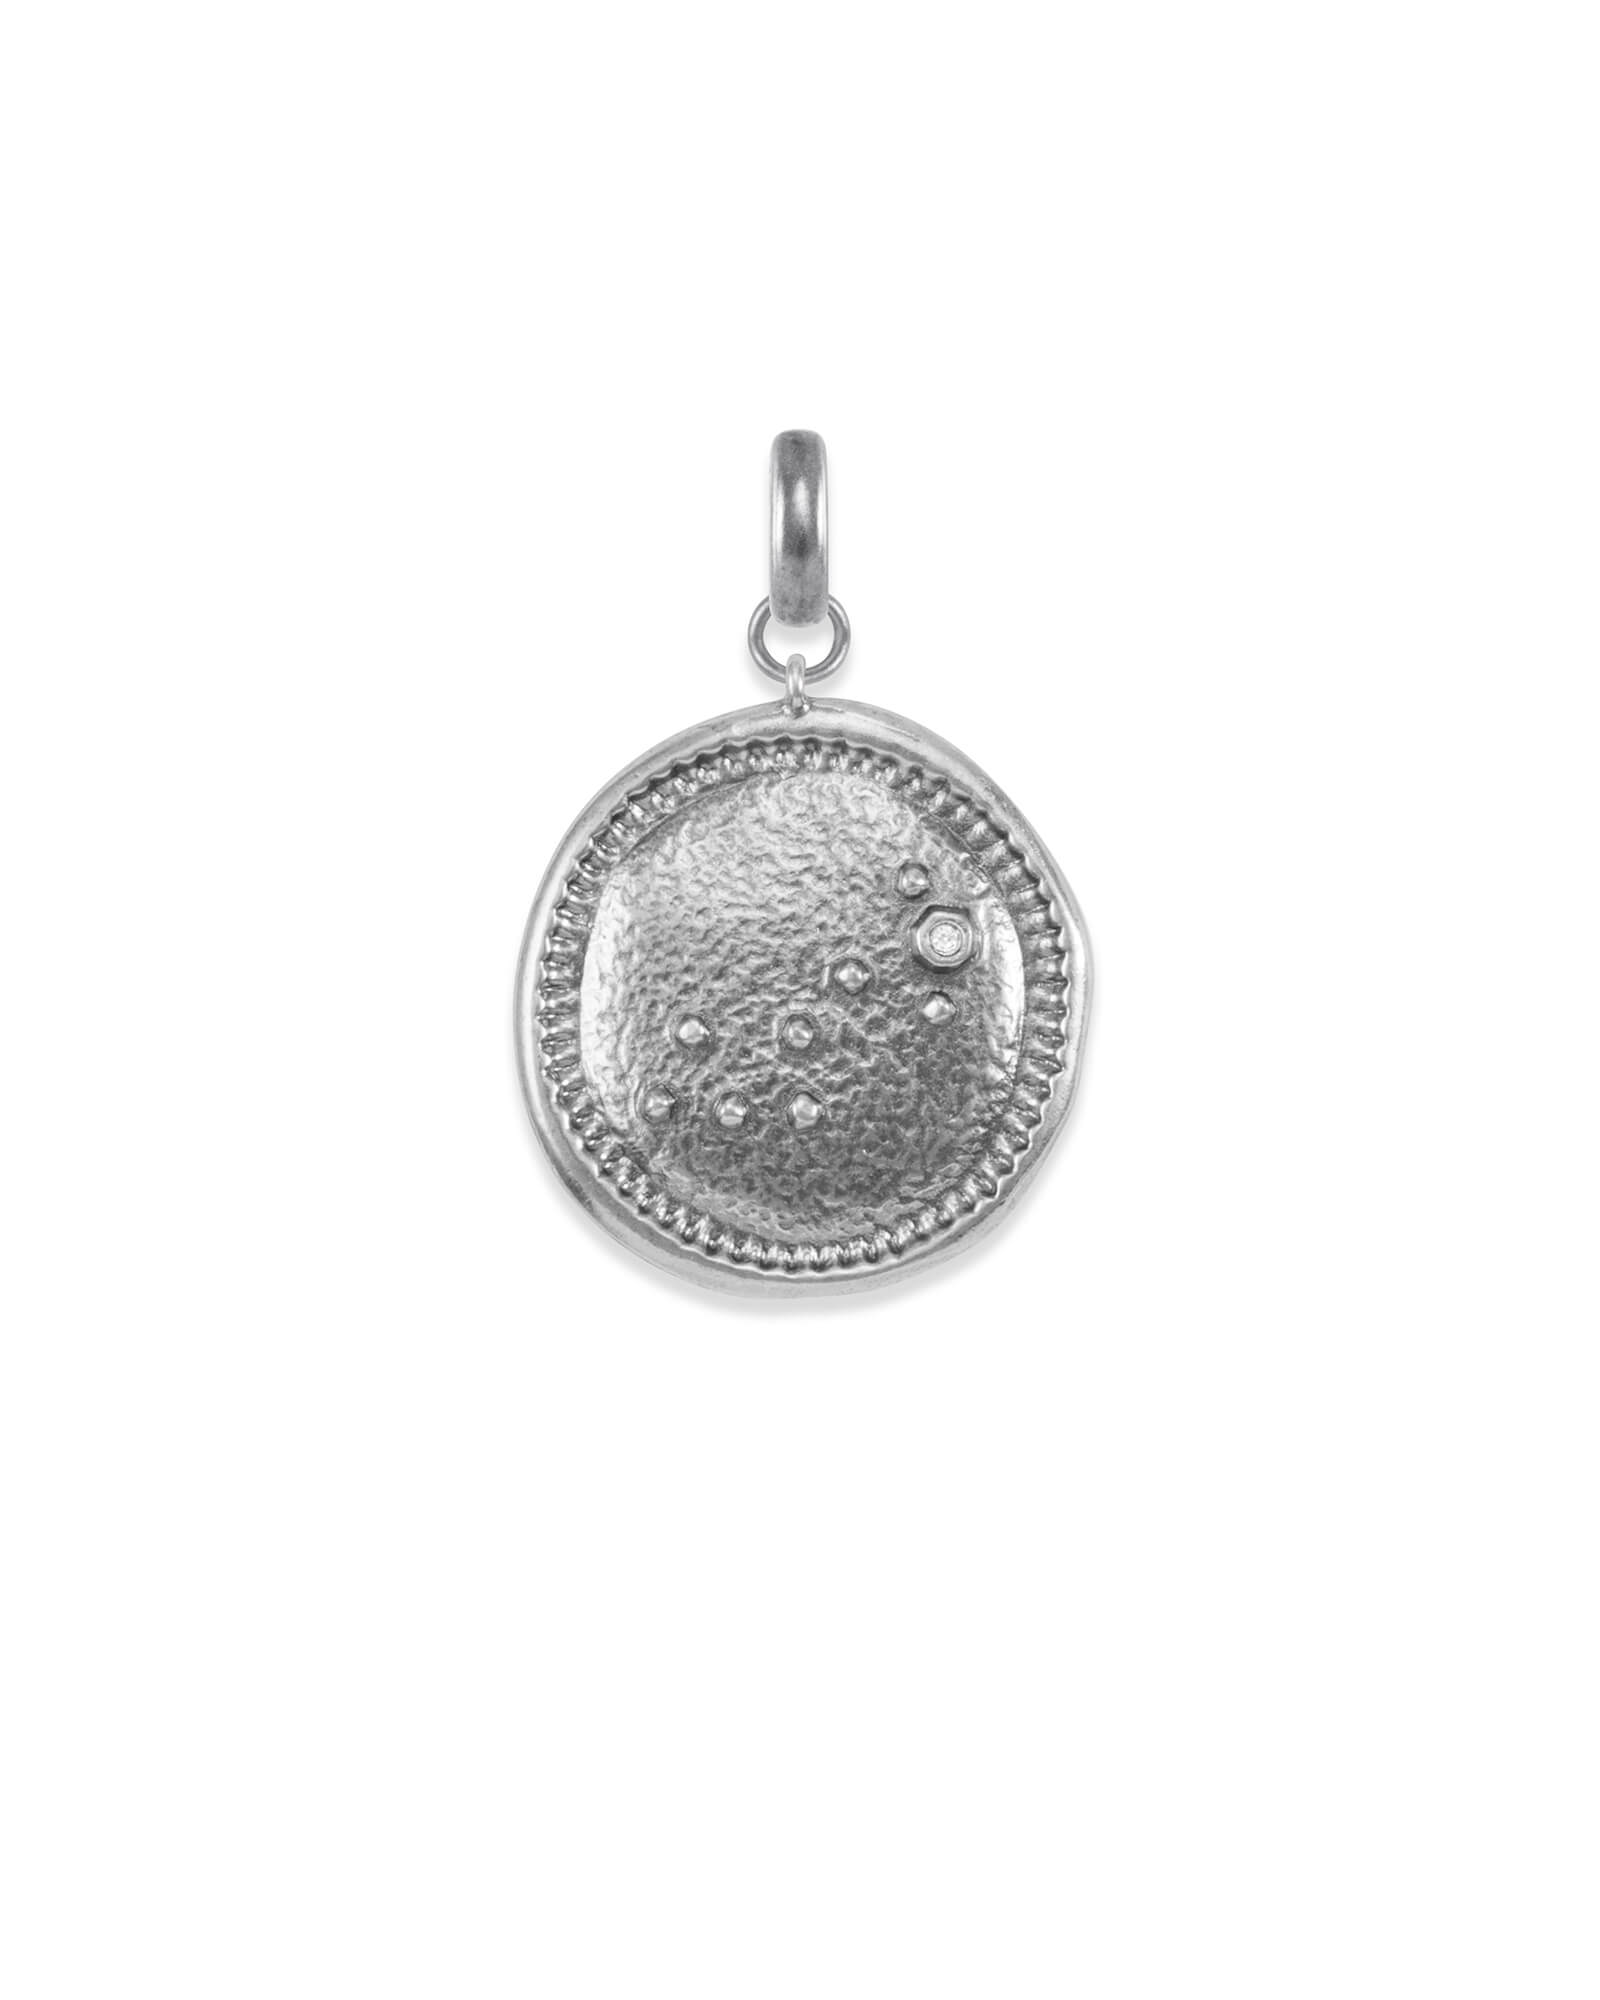 Scorpio Coin Charm in Vintage Silver